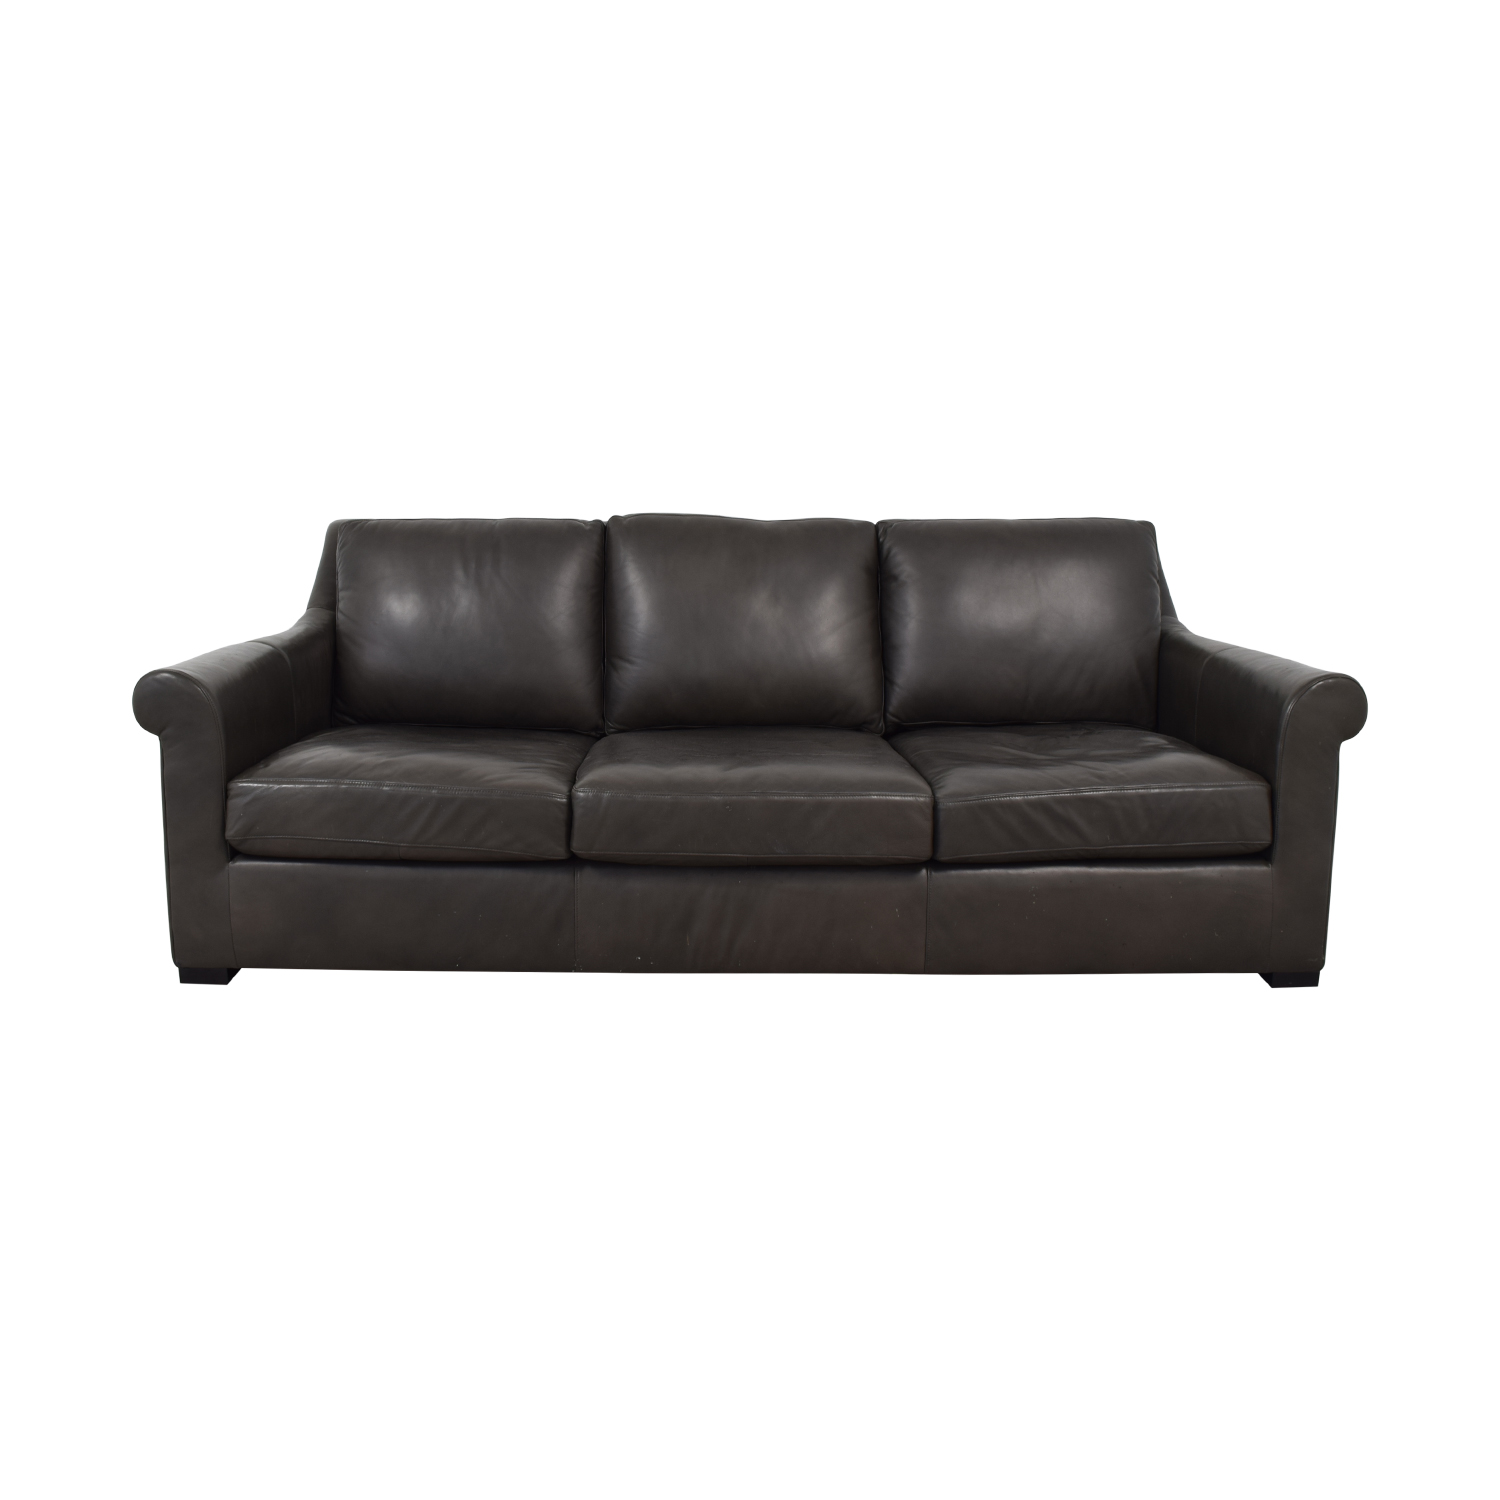 Bernhardt Bernhardt Three Cushion Sofa price